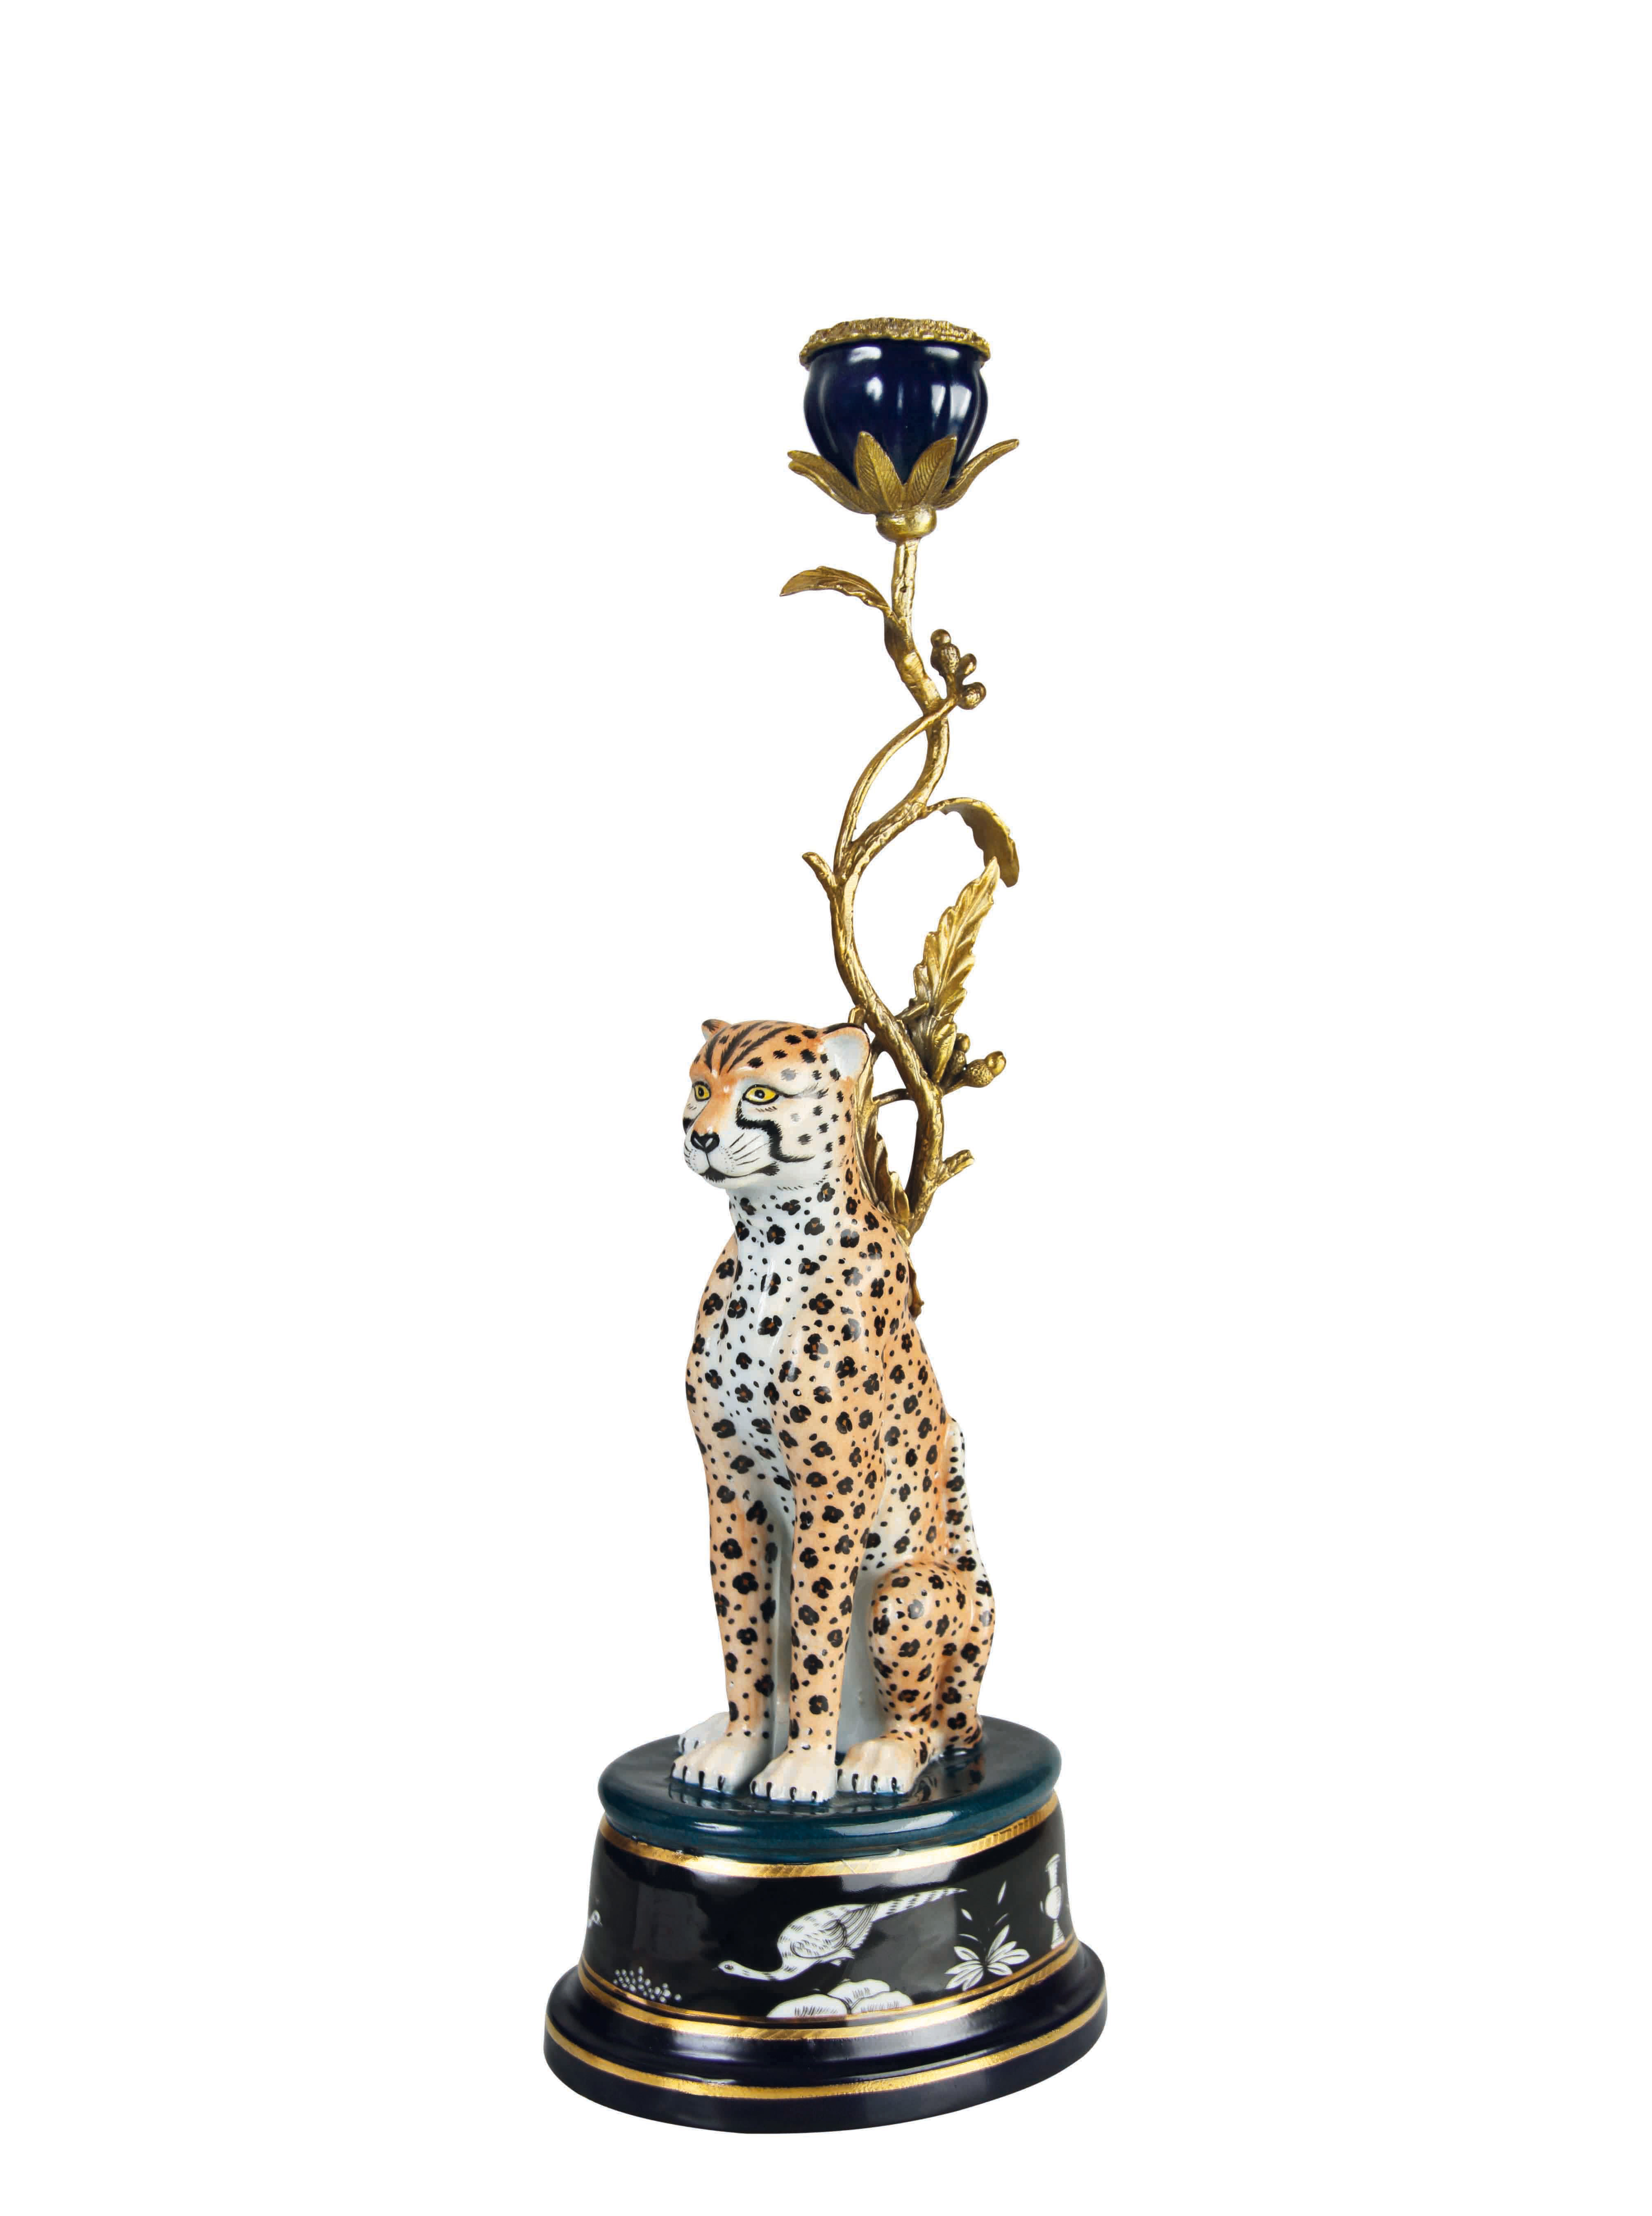 Decoration - Candles & Candle Holders - Léopard Candle stick - / H 44 cm - Ceramic & brass by & klevering - Leopard - Brass, Ceramic